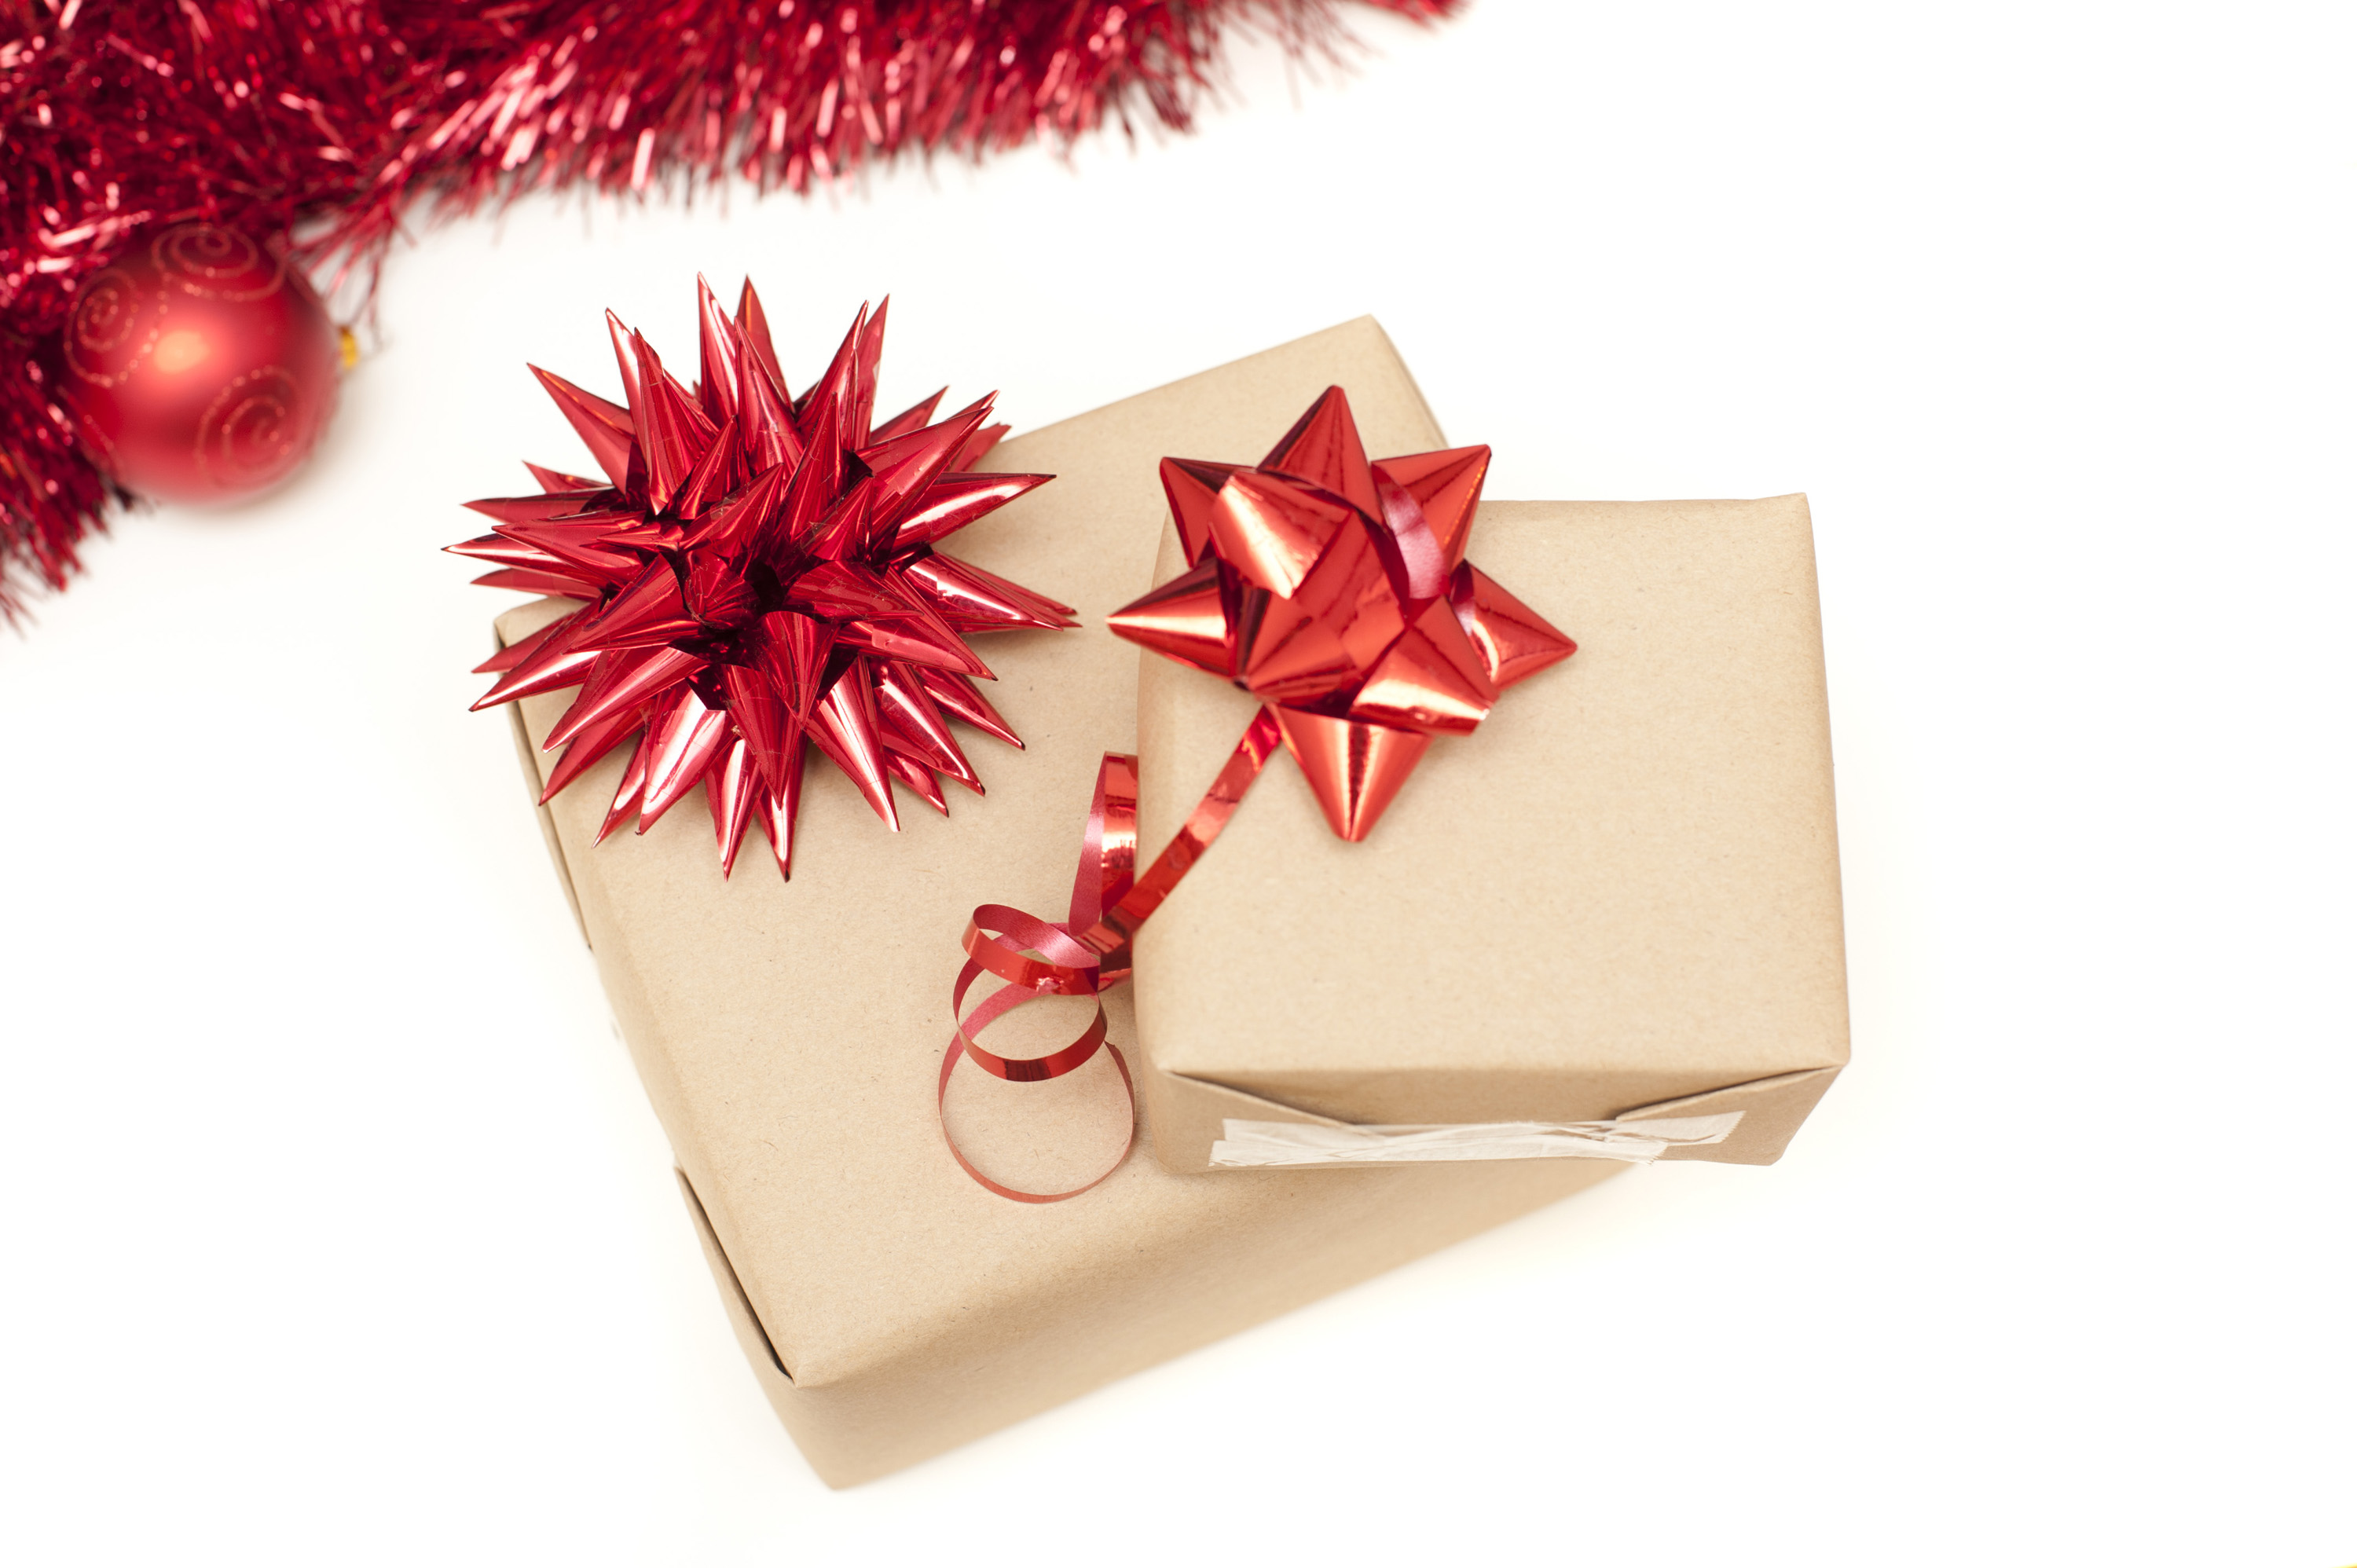 Photo of Two plain wrapped Christmas gifts with bows | Free ...